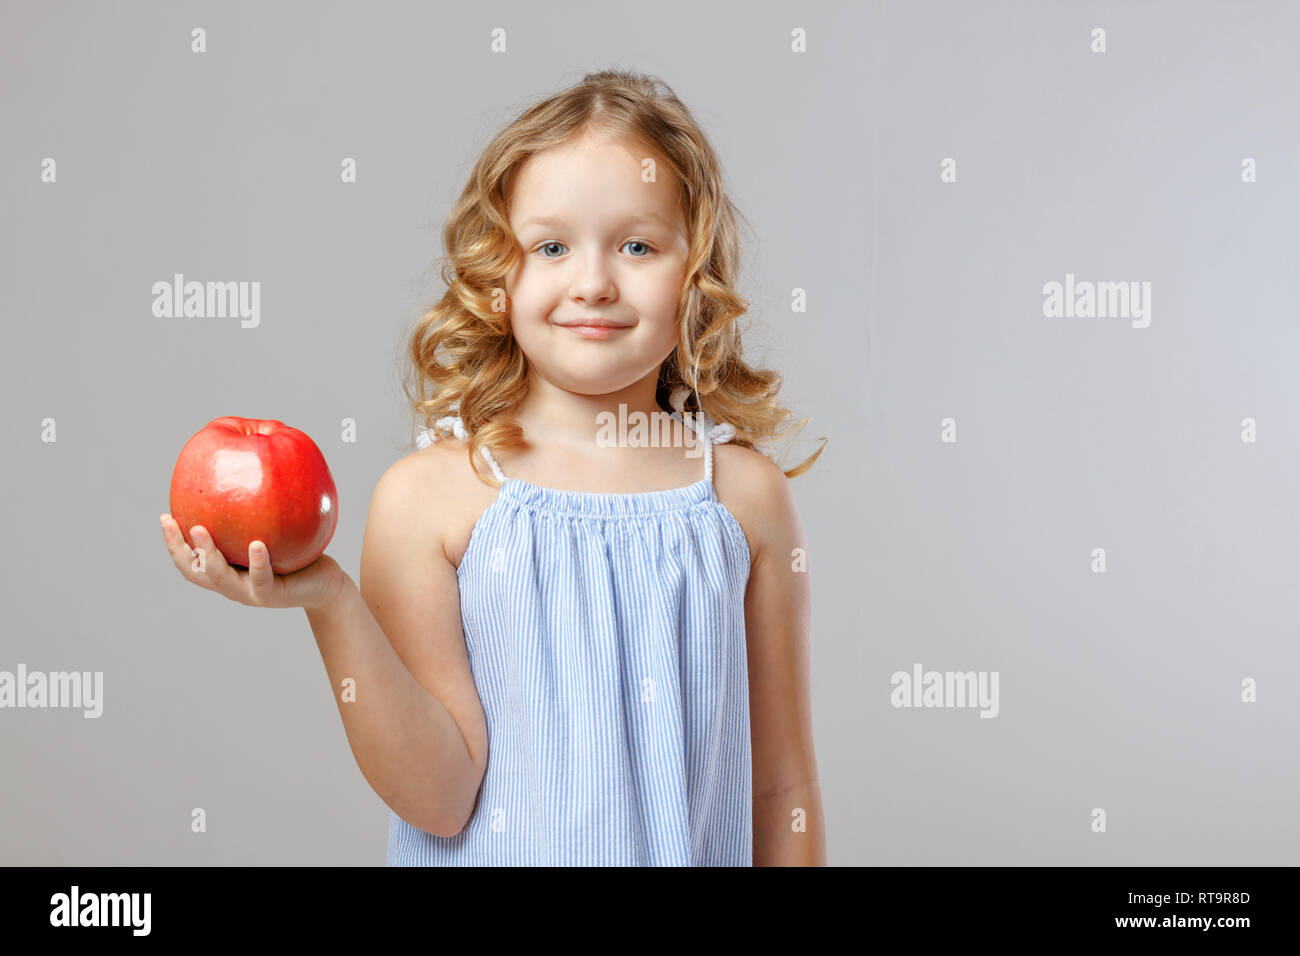 c880dc180c3 Portrait of an adorable little girl child holding in her hand a red apple.  Gray